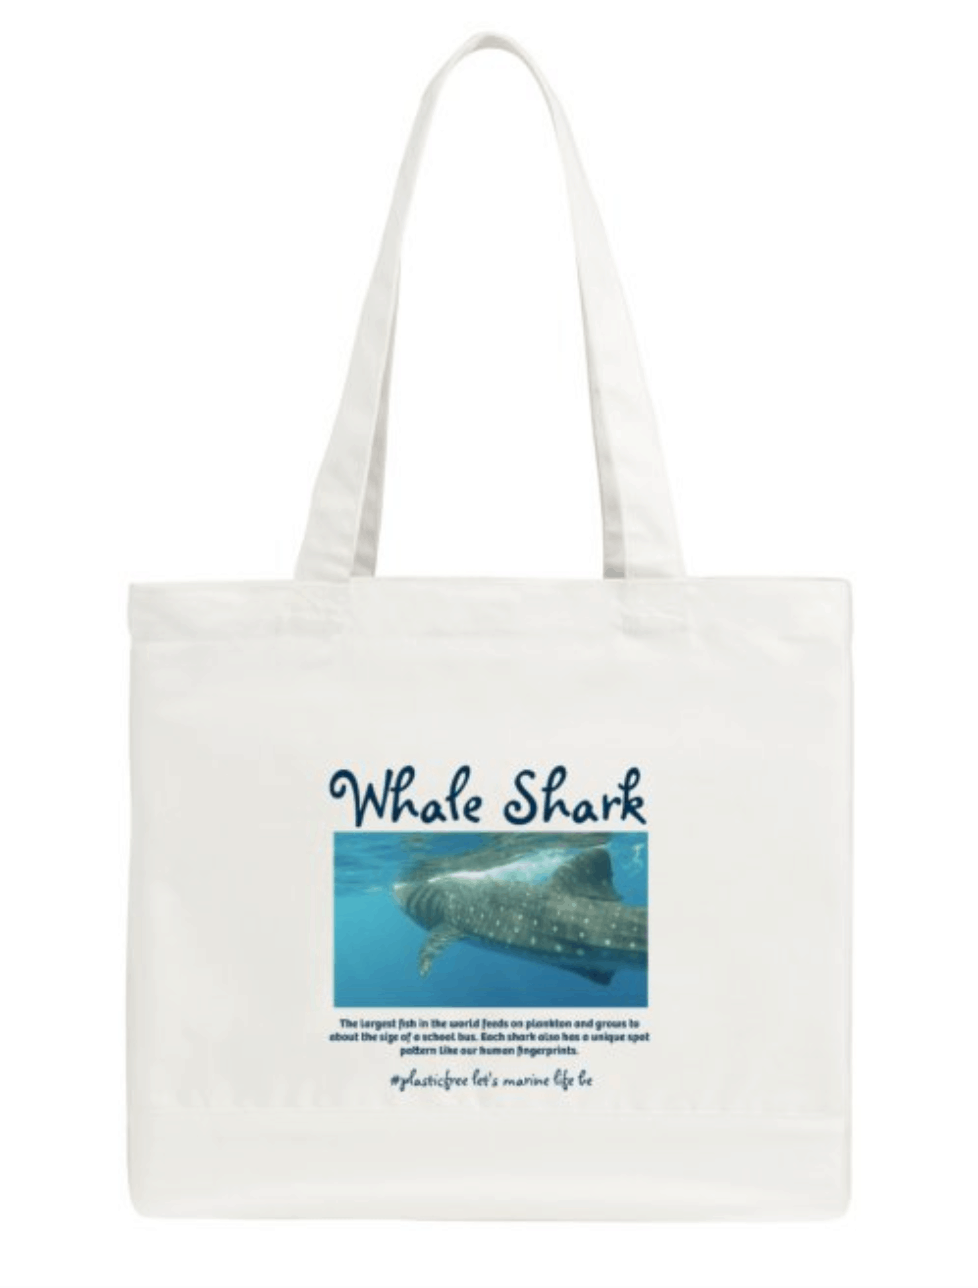 Sharks Swimming Tote Shopping Bag For Life